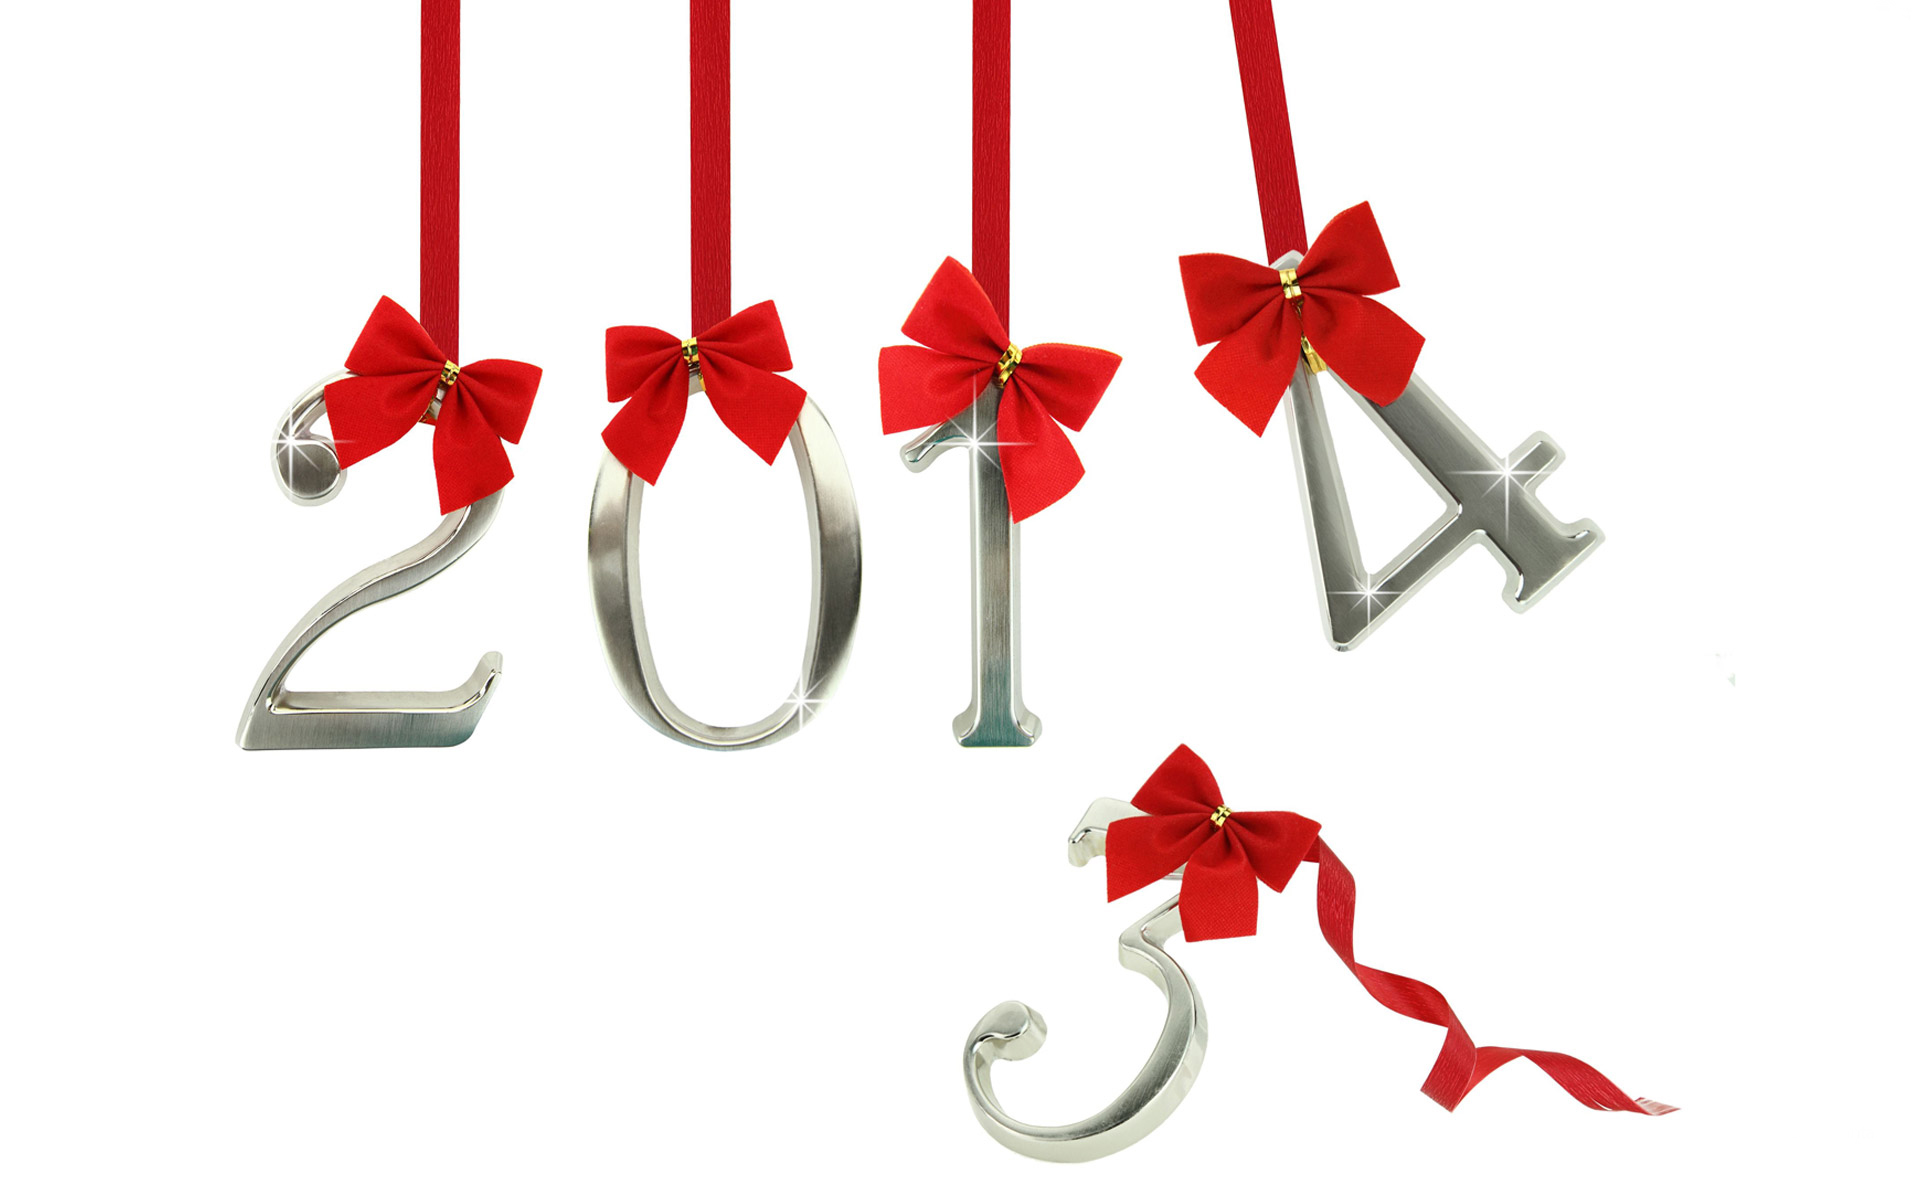 ���� ��� ������ ����� ������ �������� ������ 2014 merry christmas and a happy new year